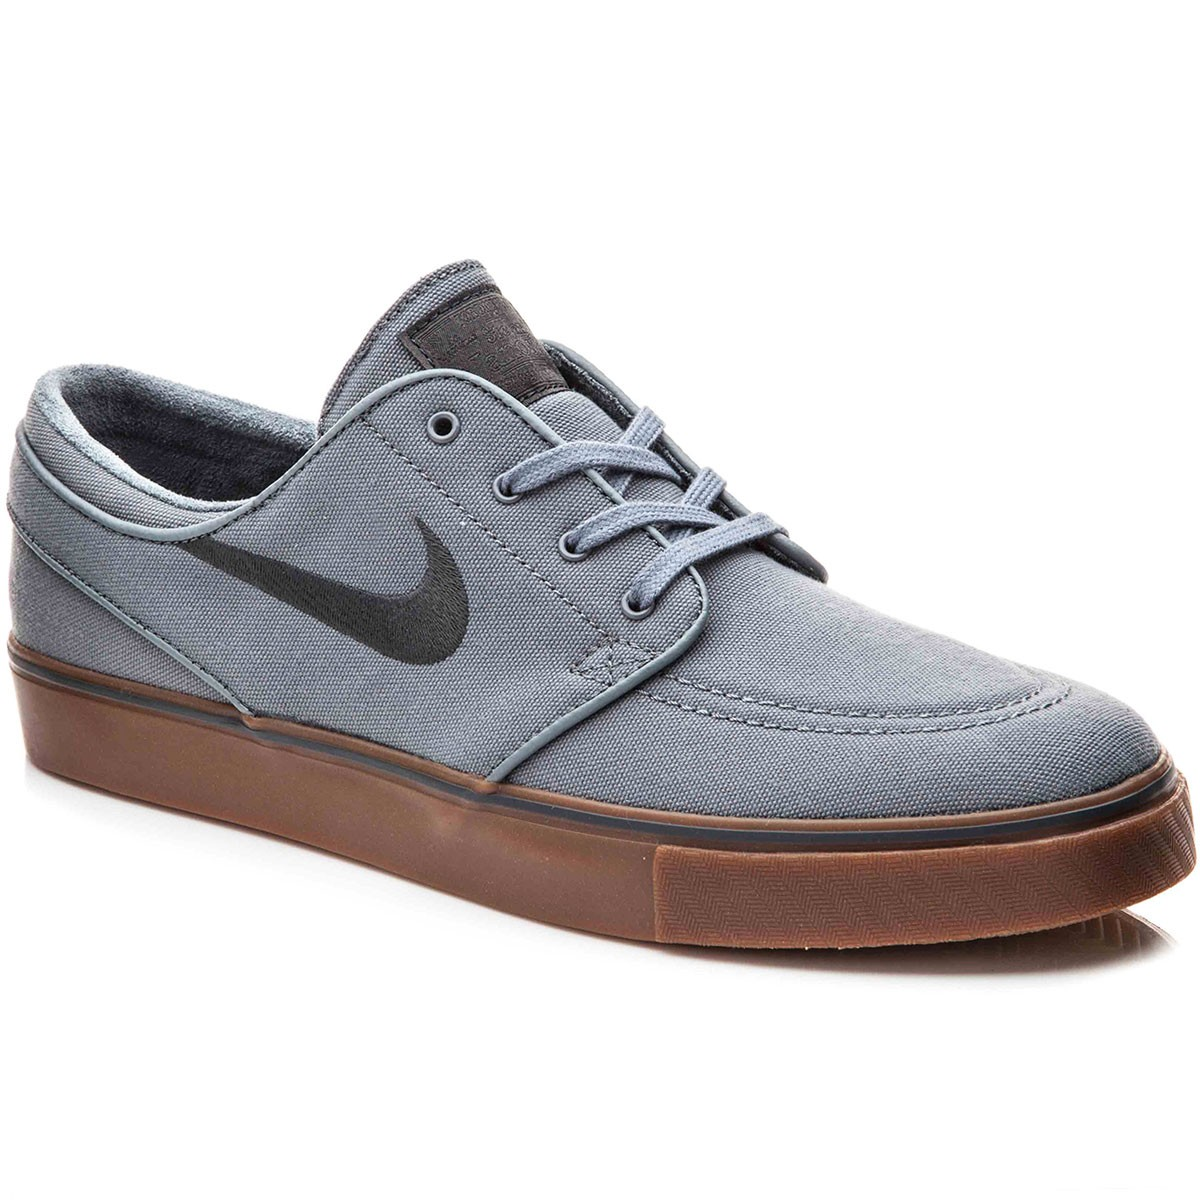 Nike Zoom Stefan Janoski Canvas Shoes - Cool Grey/Black/Gum/Anthracite - 10.0